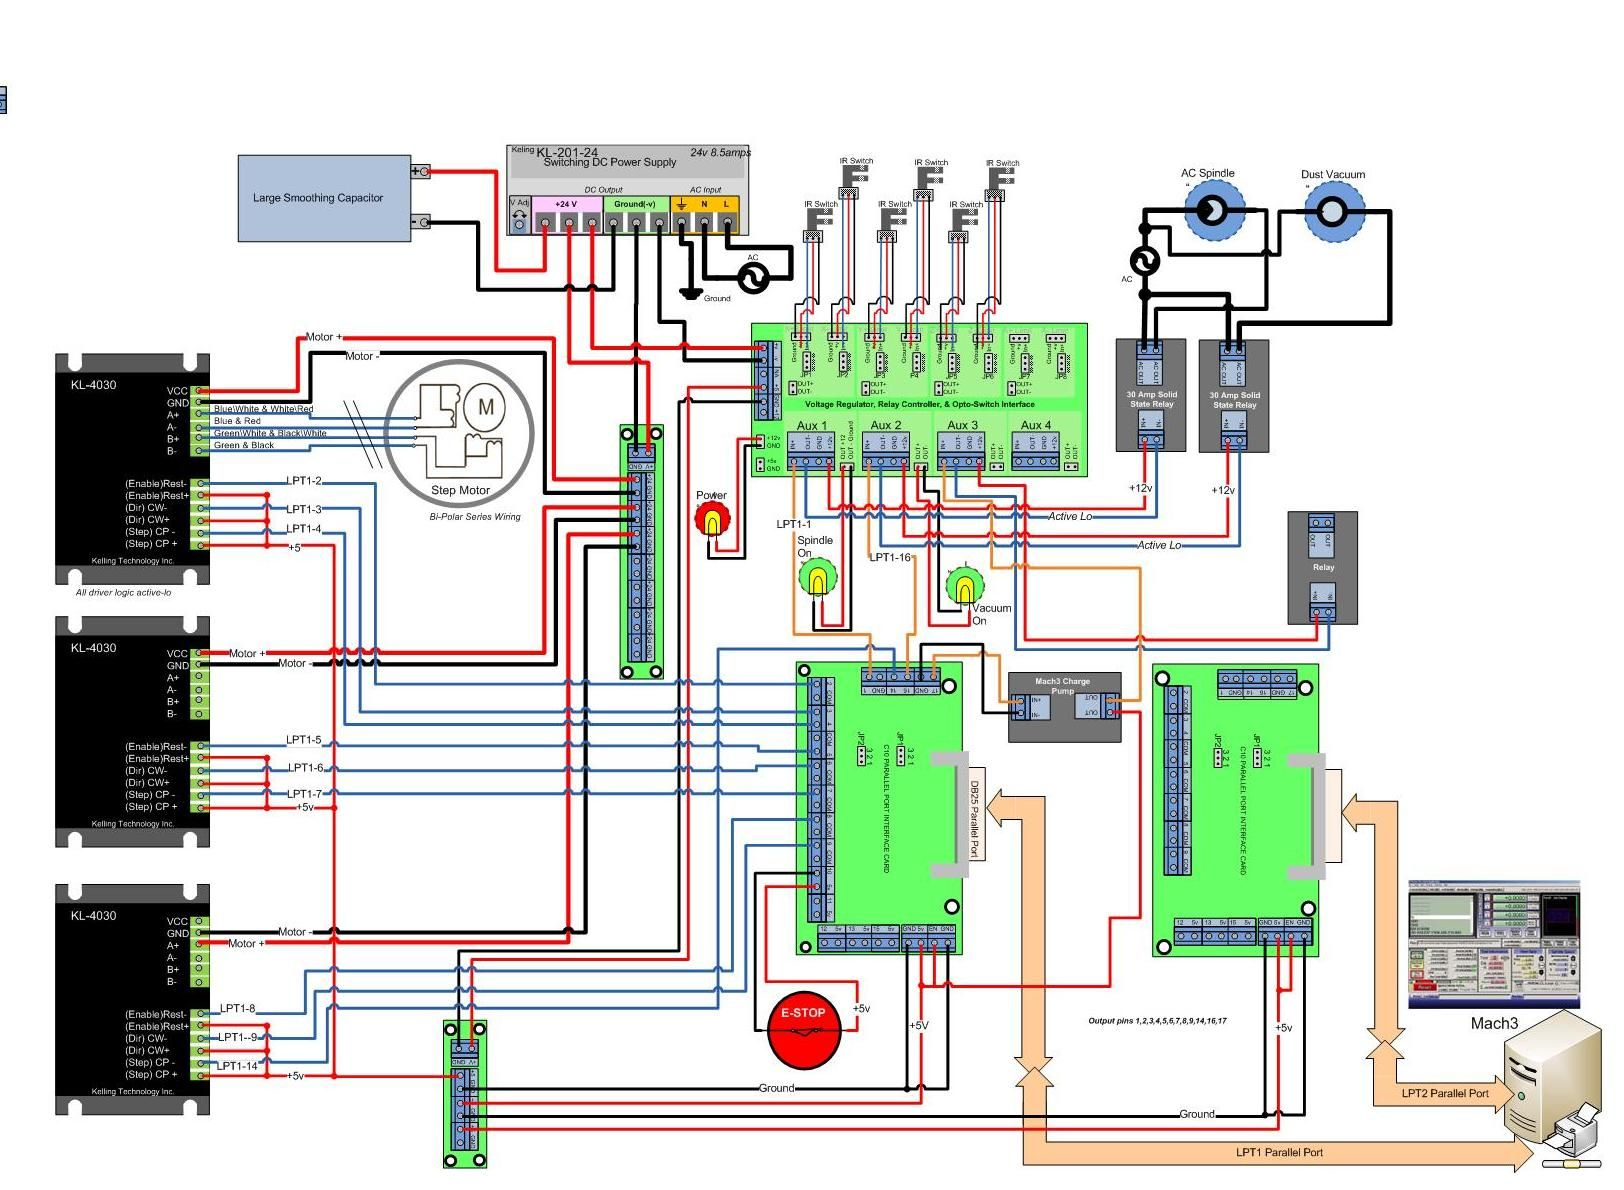 de60b189cc98ab72eeb9d2e3f3d349dc cnc power diagram cnc controller diagram \u2022 wiring diagrams j panasonic cq-c1333u wiring harness at bakdesigns.co